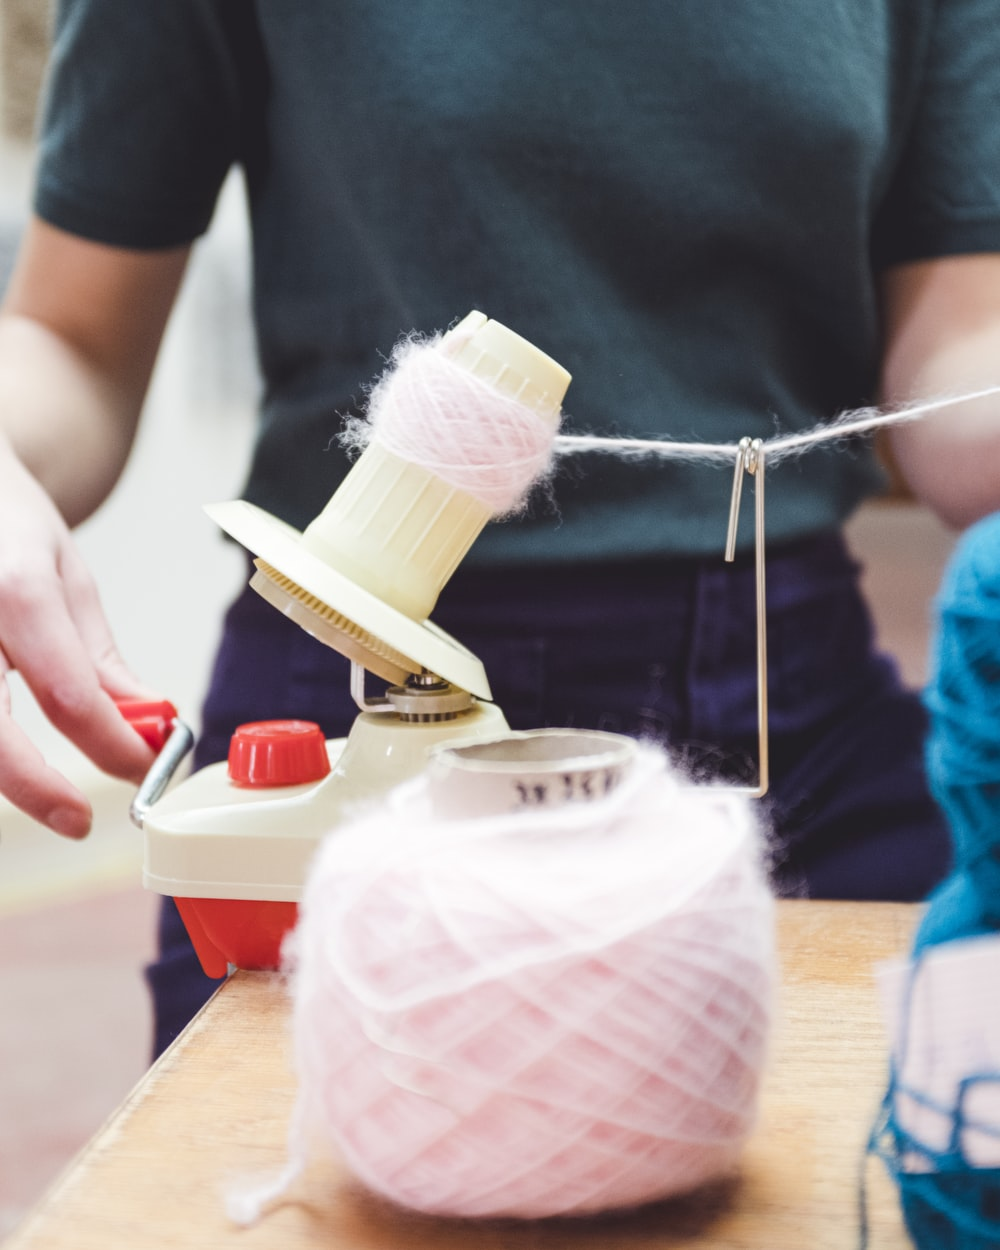 person holding white thread roll